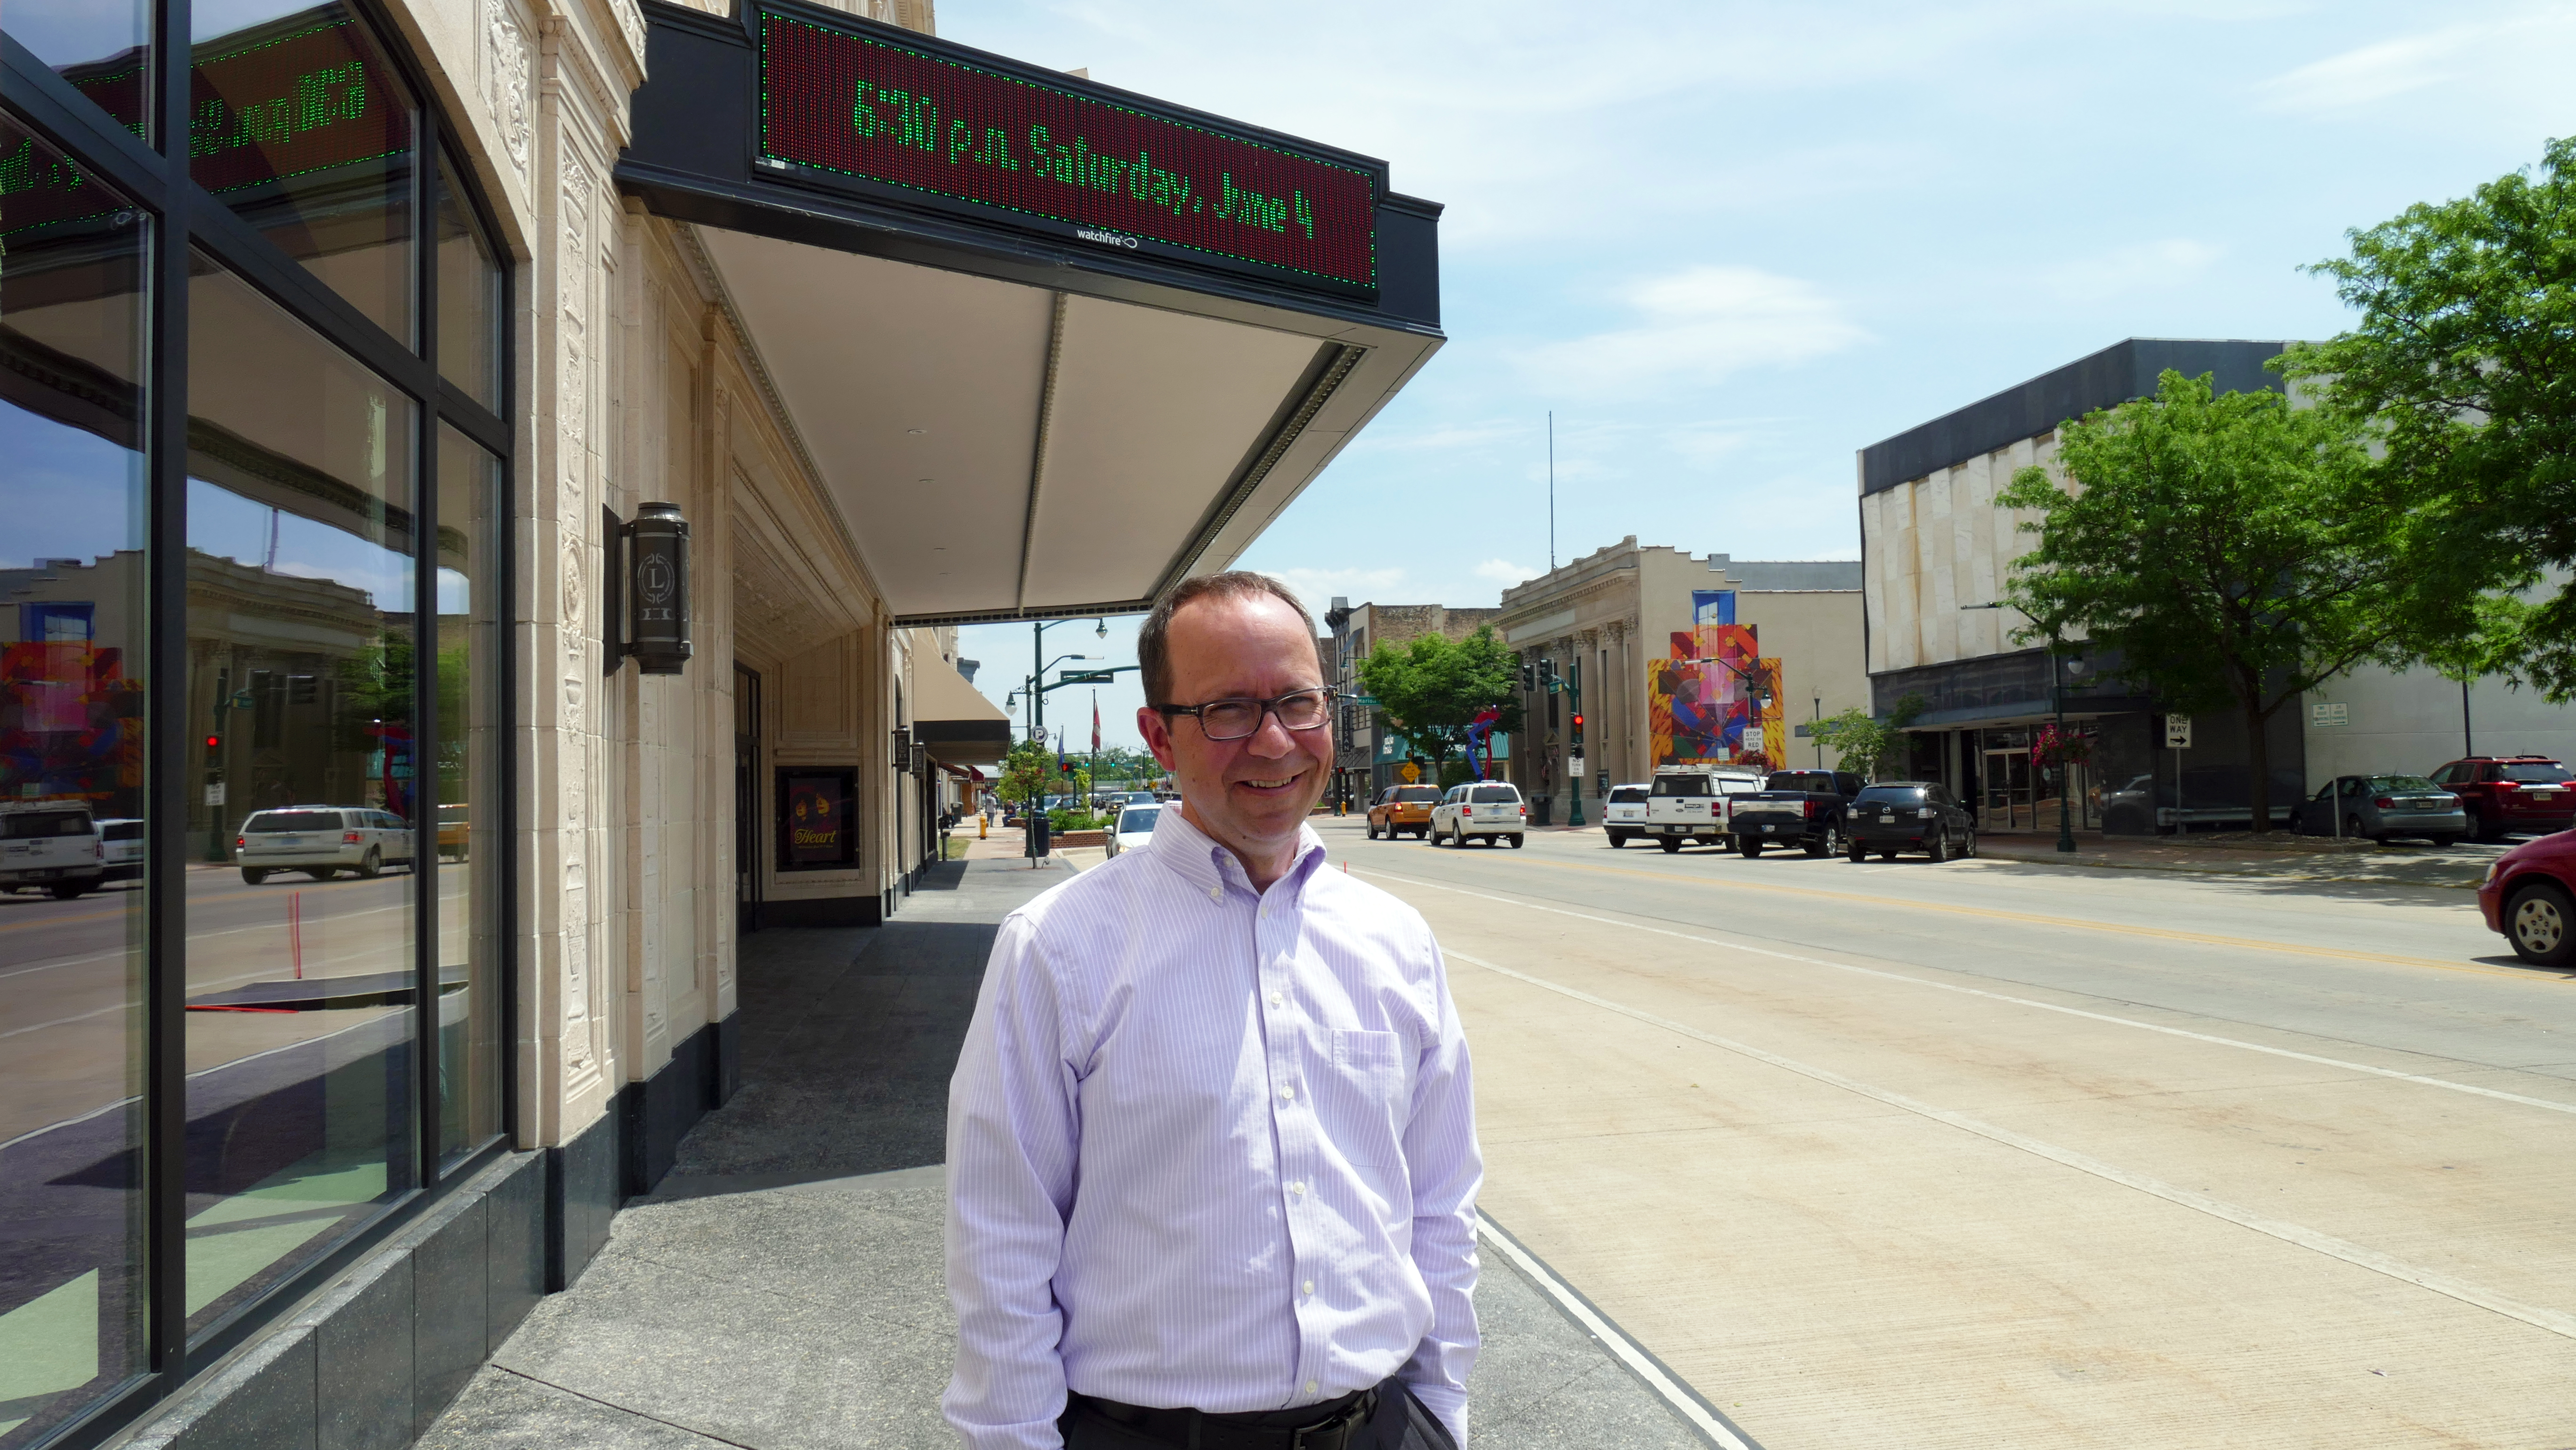 Unemployment in Elkhart is down to four percent from roughly 20 percent in 2009, according to Kyle Hannon, 51, the president of the Elkhart Chamber of Commerce.